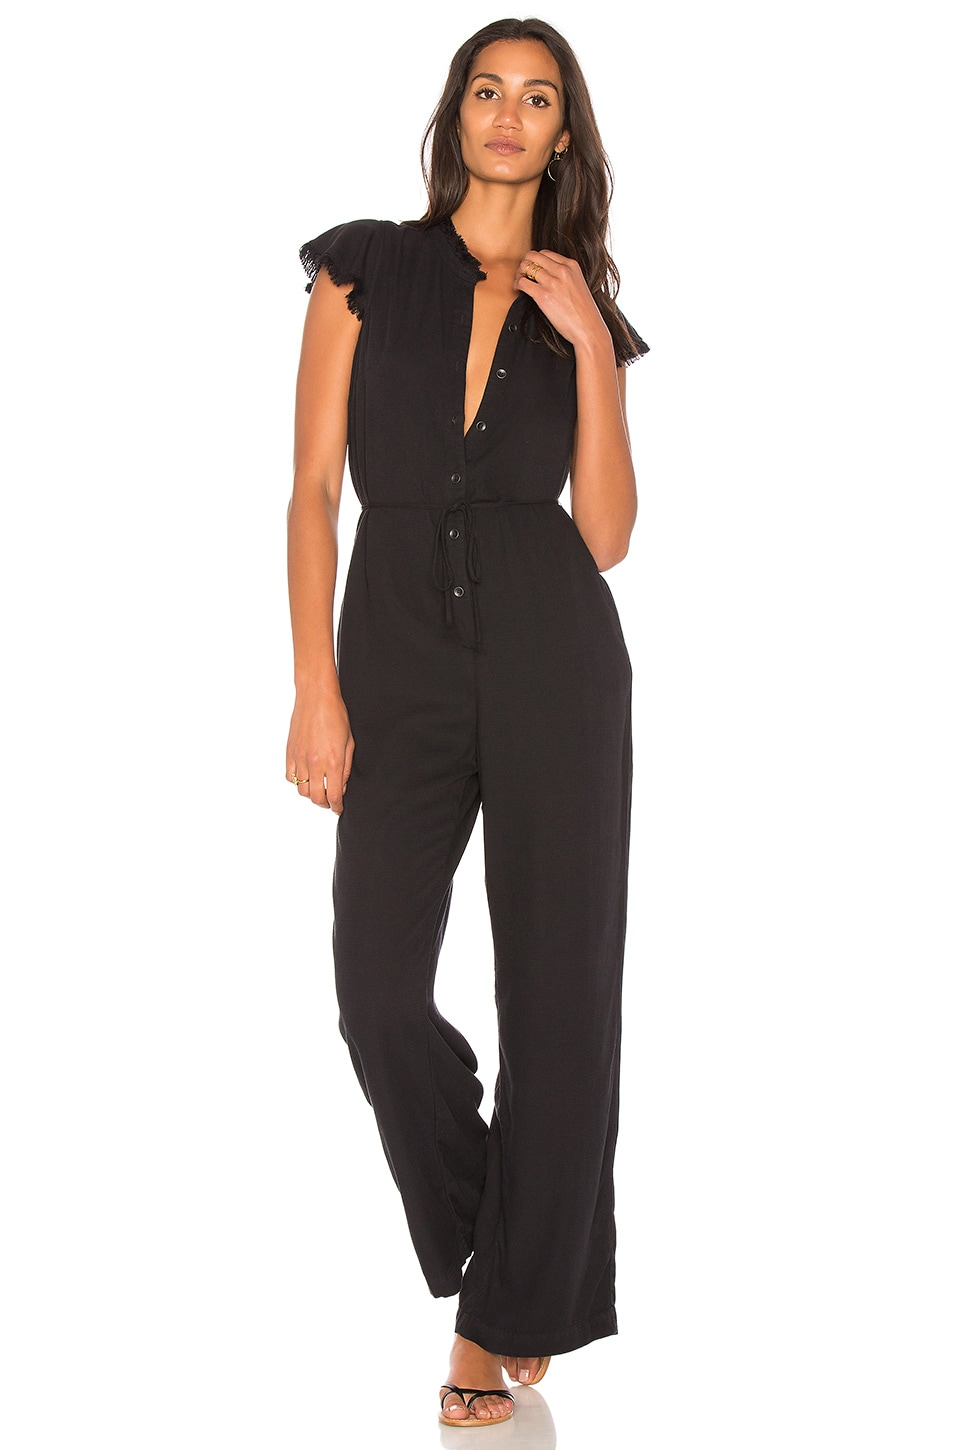 Ruffle Jumpsuit by Splendid